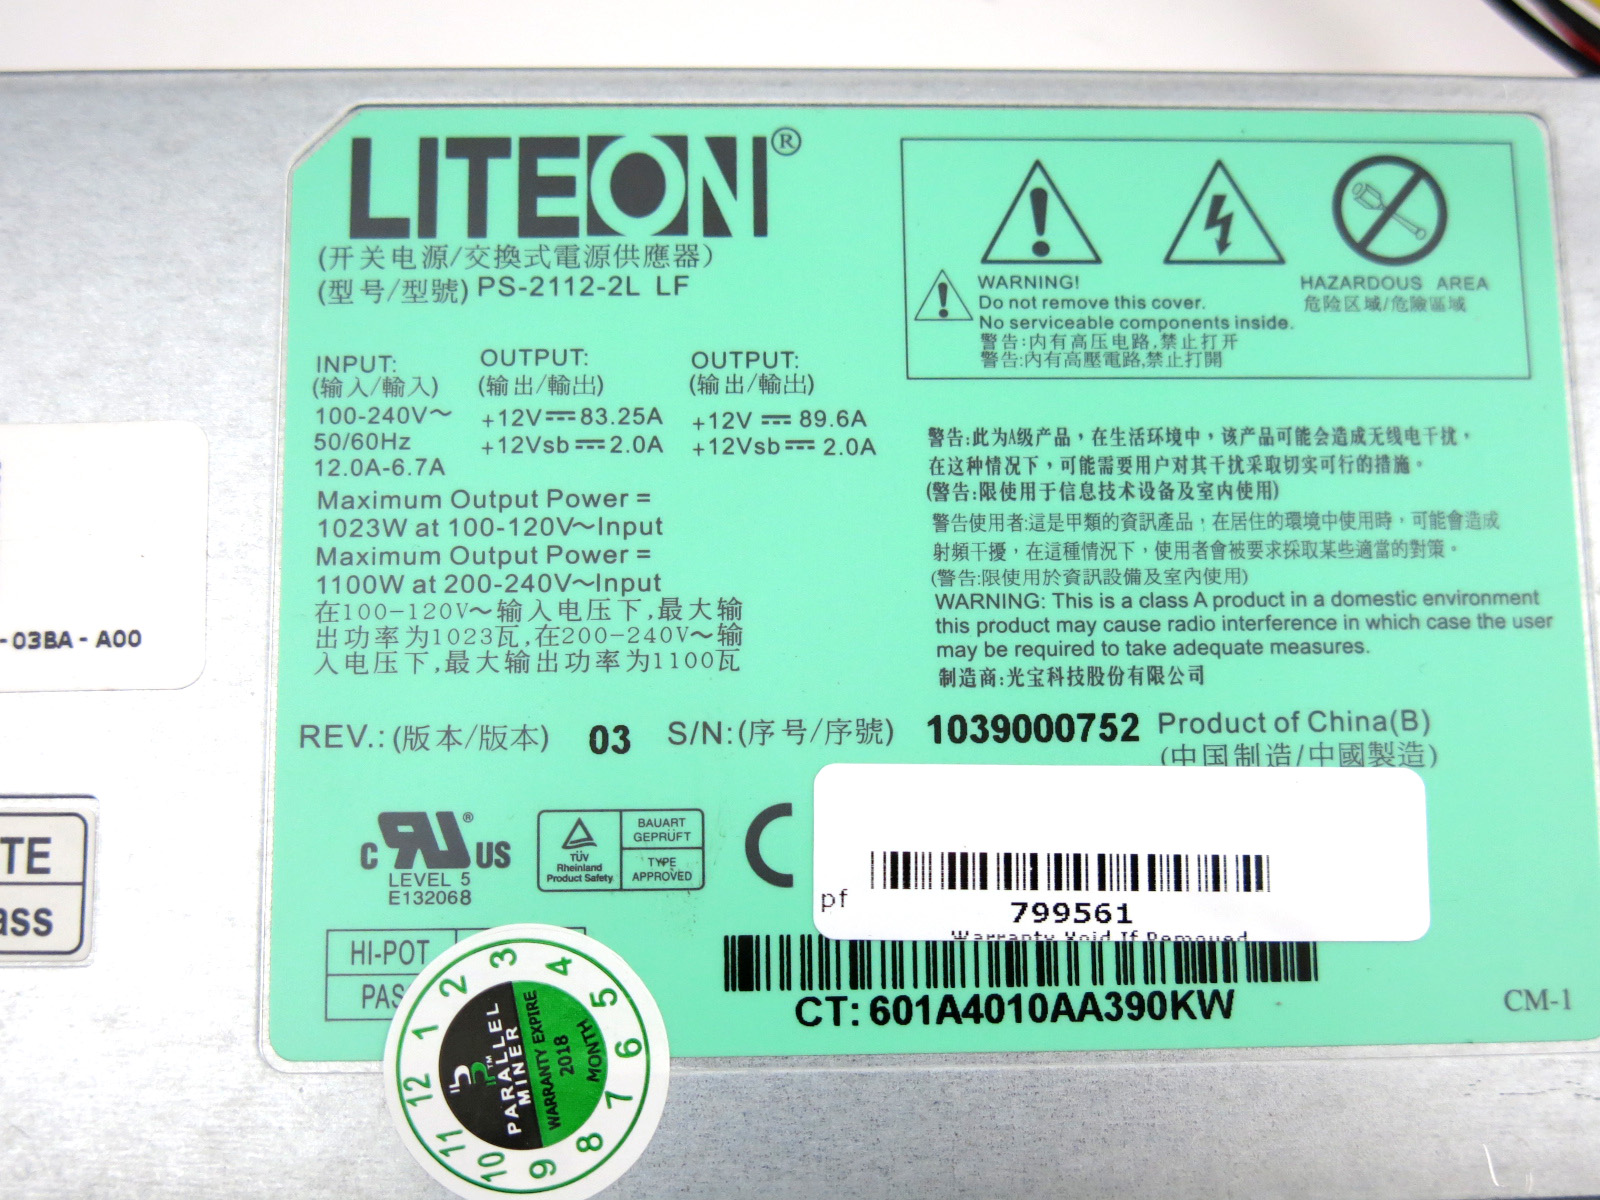 1100W label from the server power supply kit